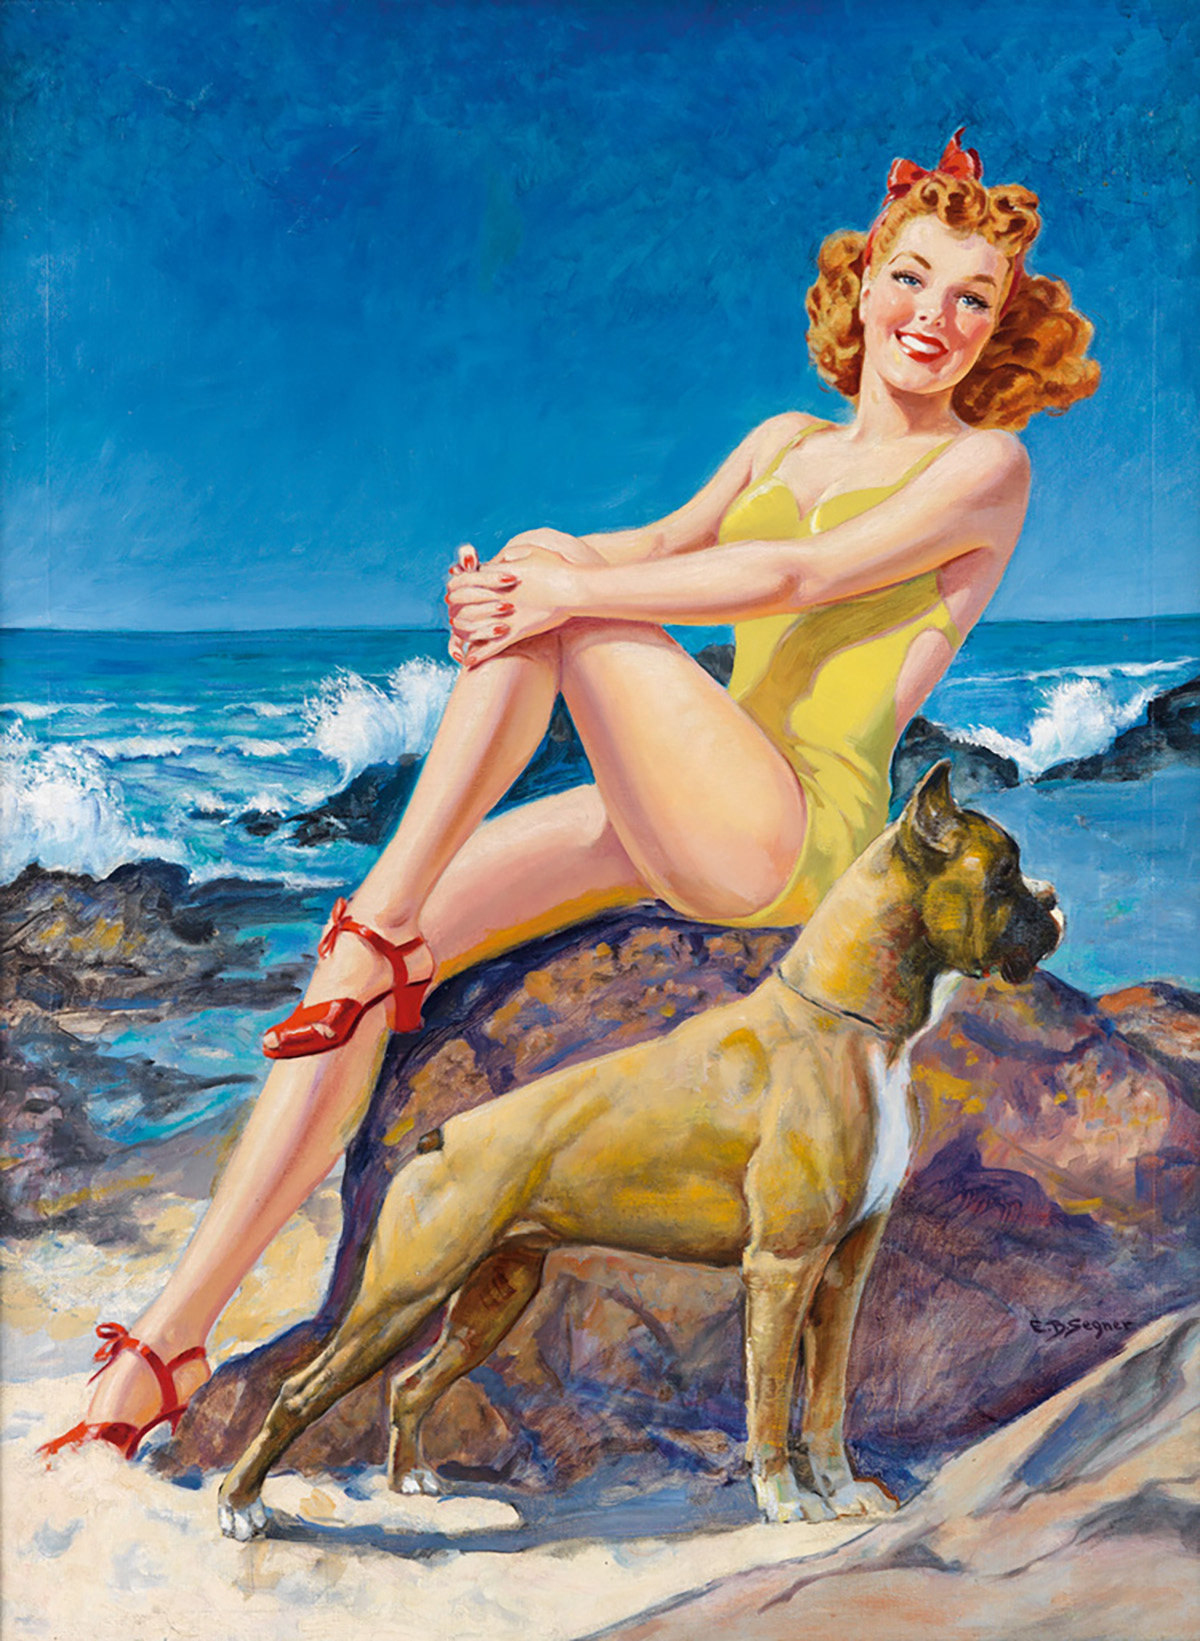 ELLEN SEGNER (1901-2001) Canadian beauty and boxer. [COVER ART / PIN-UP]